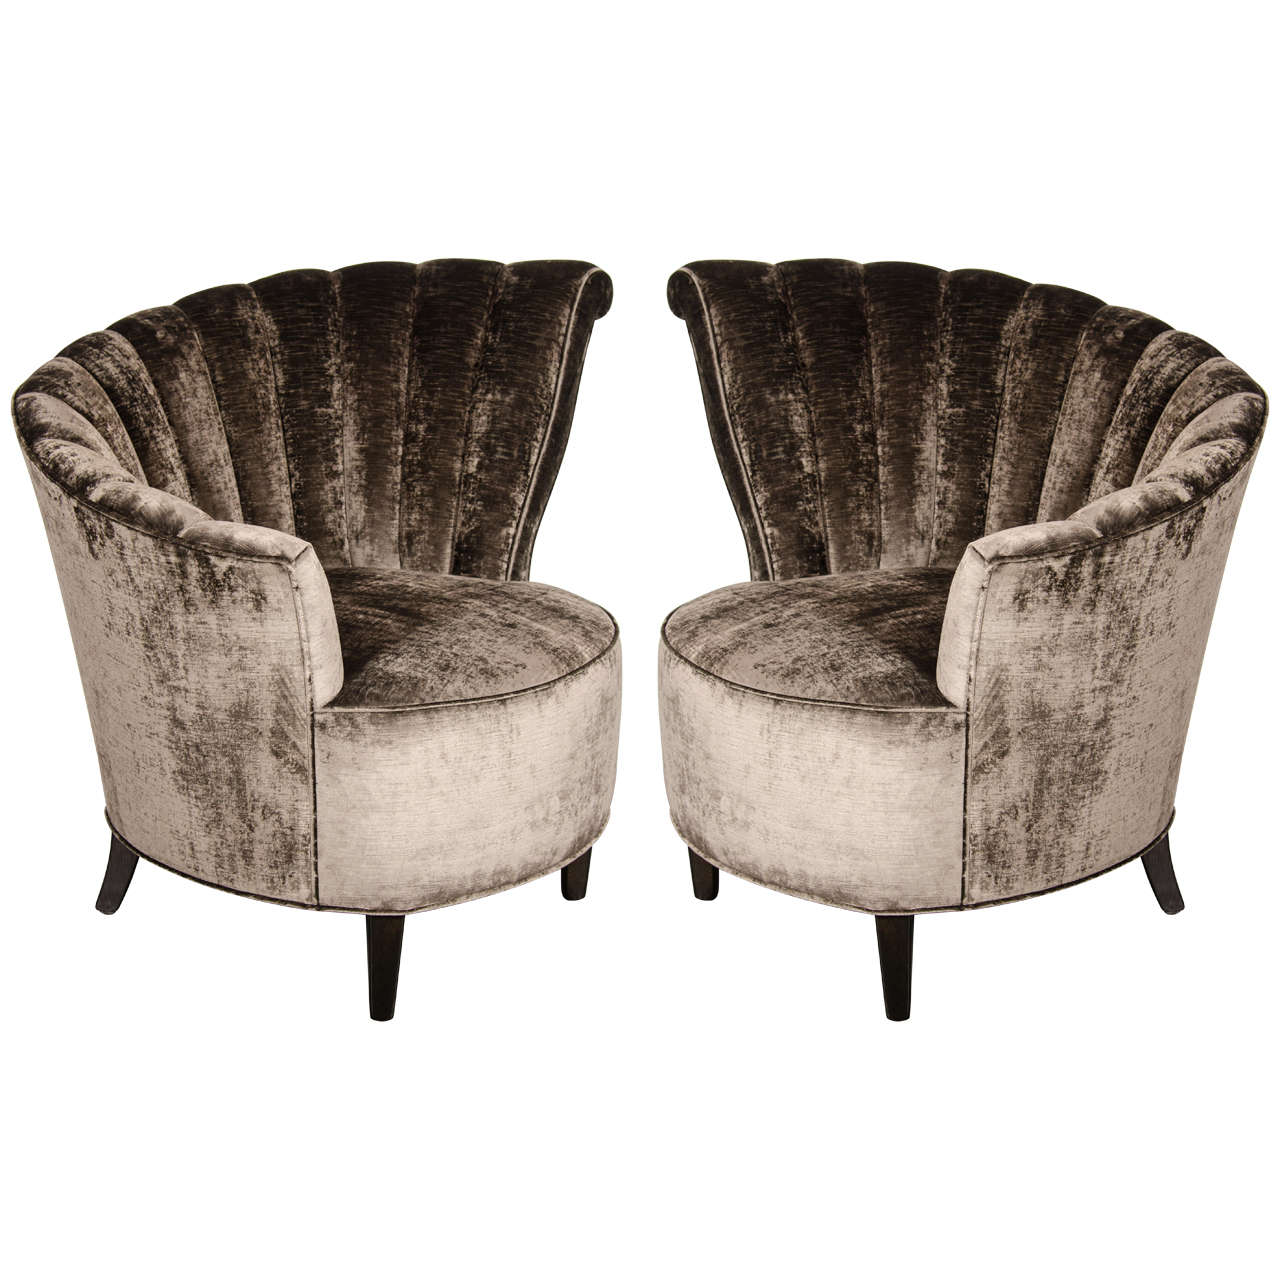 Gentil Glamorous Pair Of 1940u0027s Asymmetrical Fan Back Chairs In Smoked Velvet For  Sale